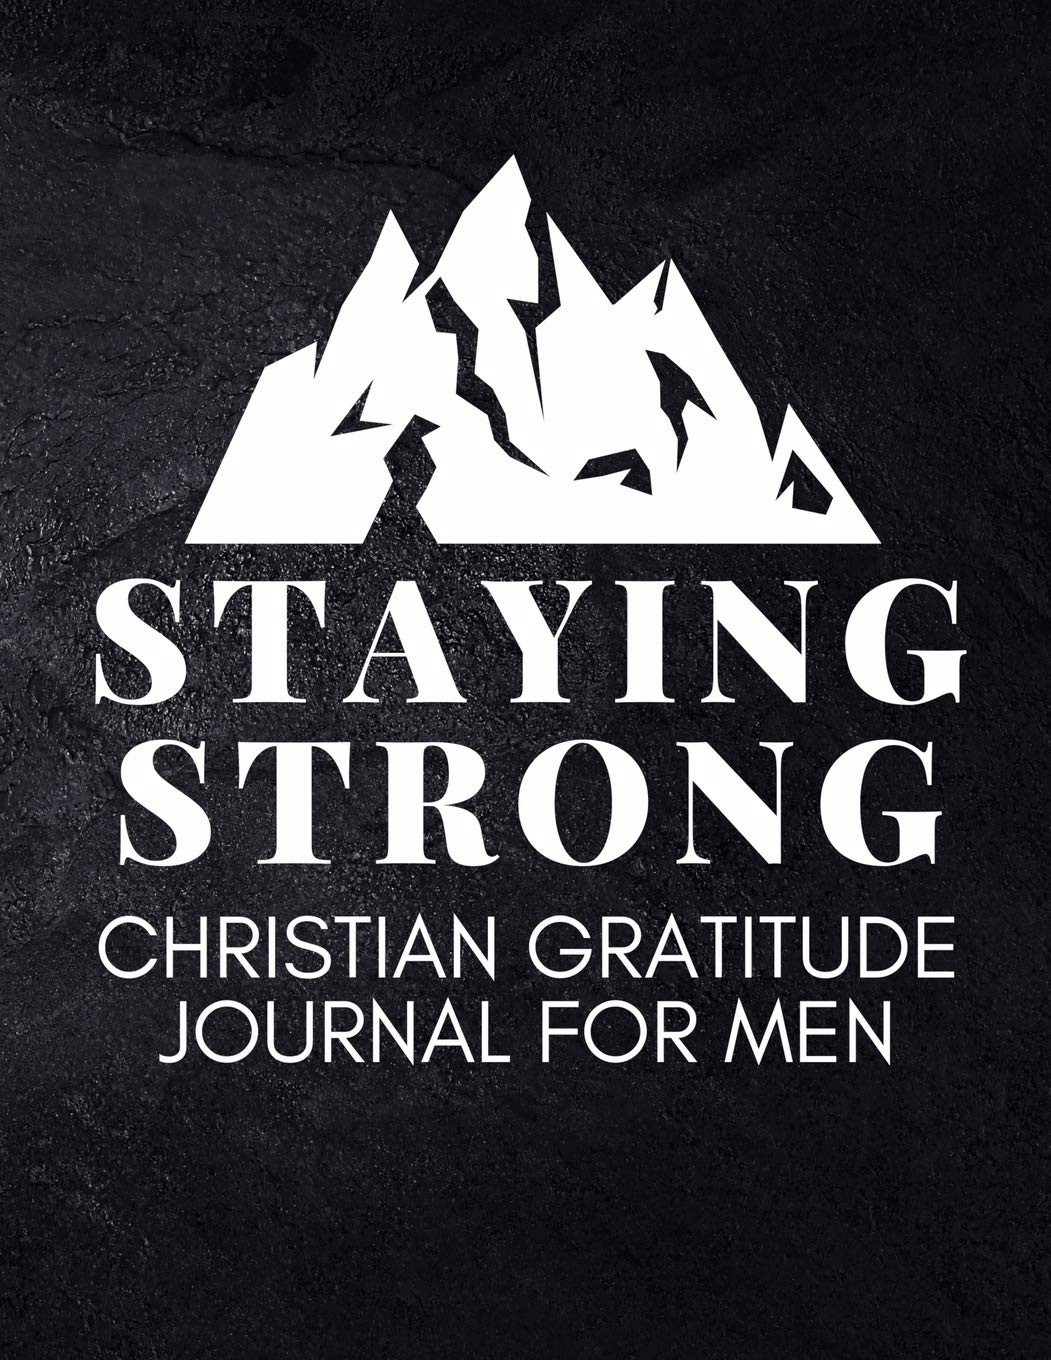 Buy Staying Strong: Christian Gratitude Journal for Men (Daily Journal with Bible  Verses & Writing Prompts) Book Online at Low Prices in India | Staying  Strong: Christian Gratitude Journal for Men (Daily